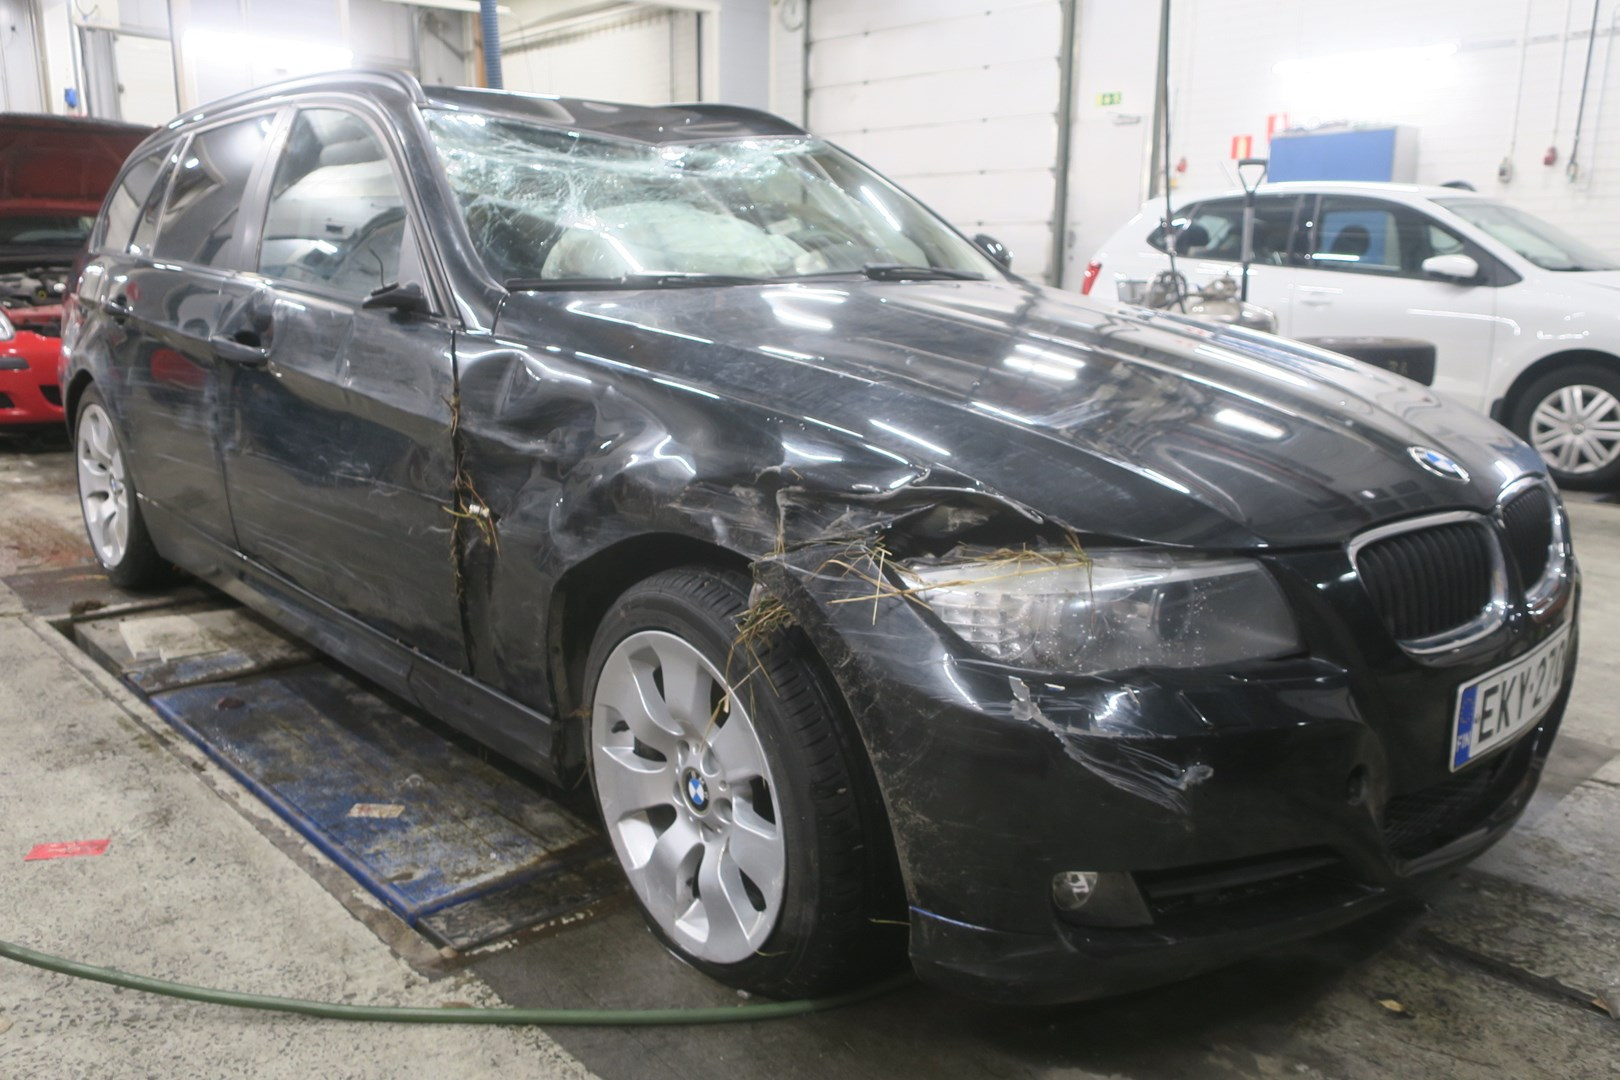 3 Wheel Car For Sale >> 2010 Bmw 300 For Sale At Espoo On Tuesday November 26 2019